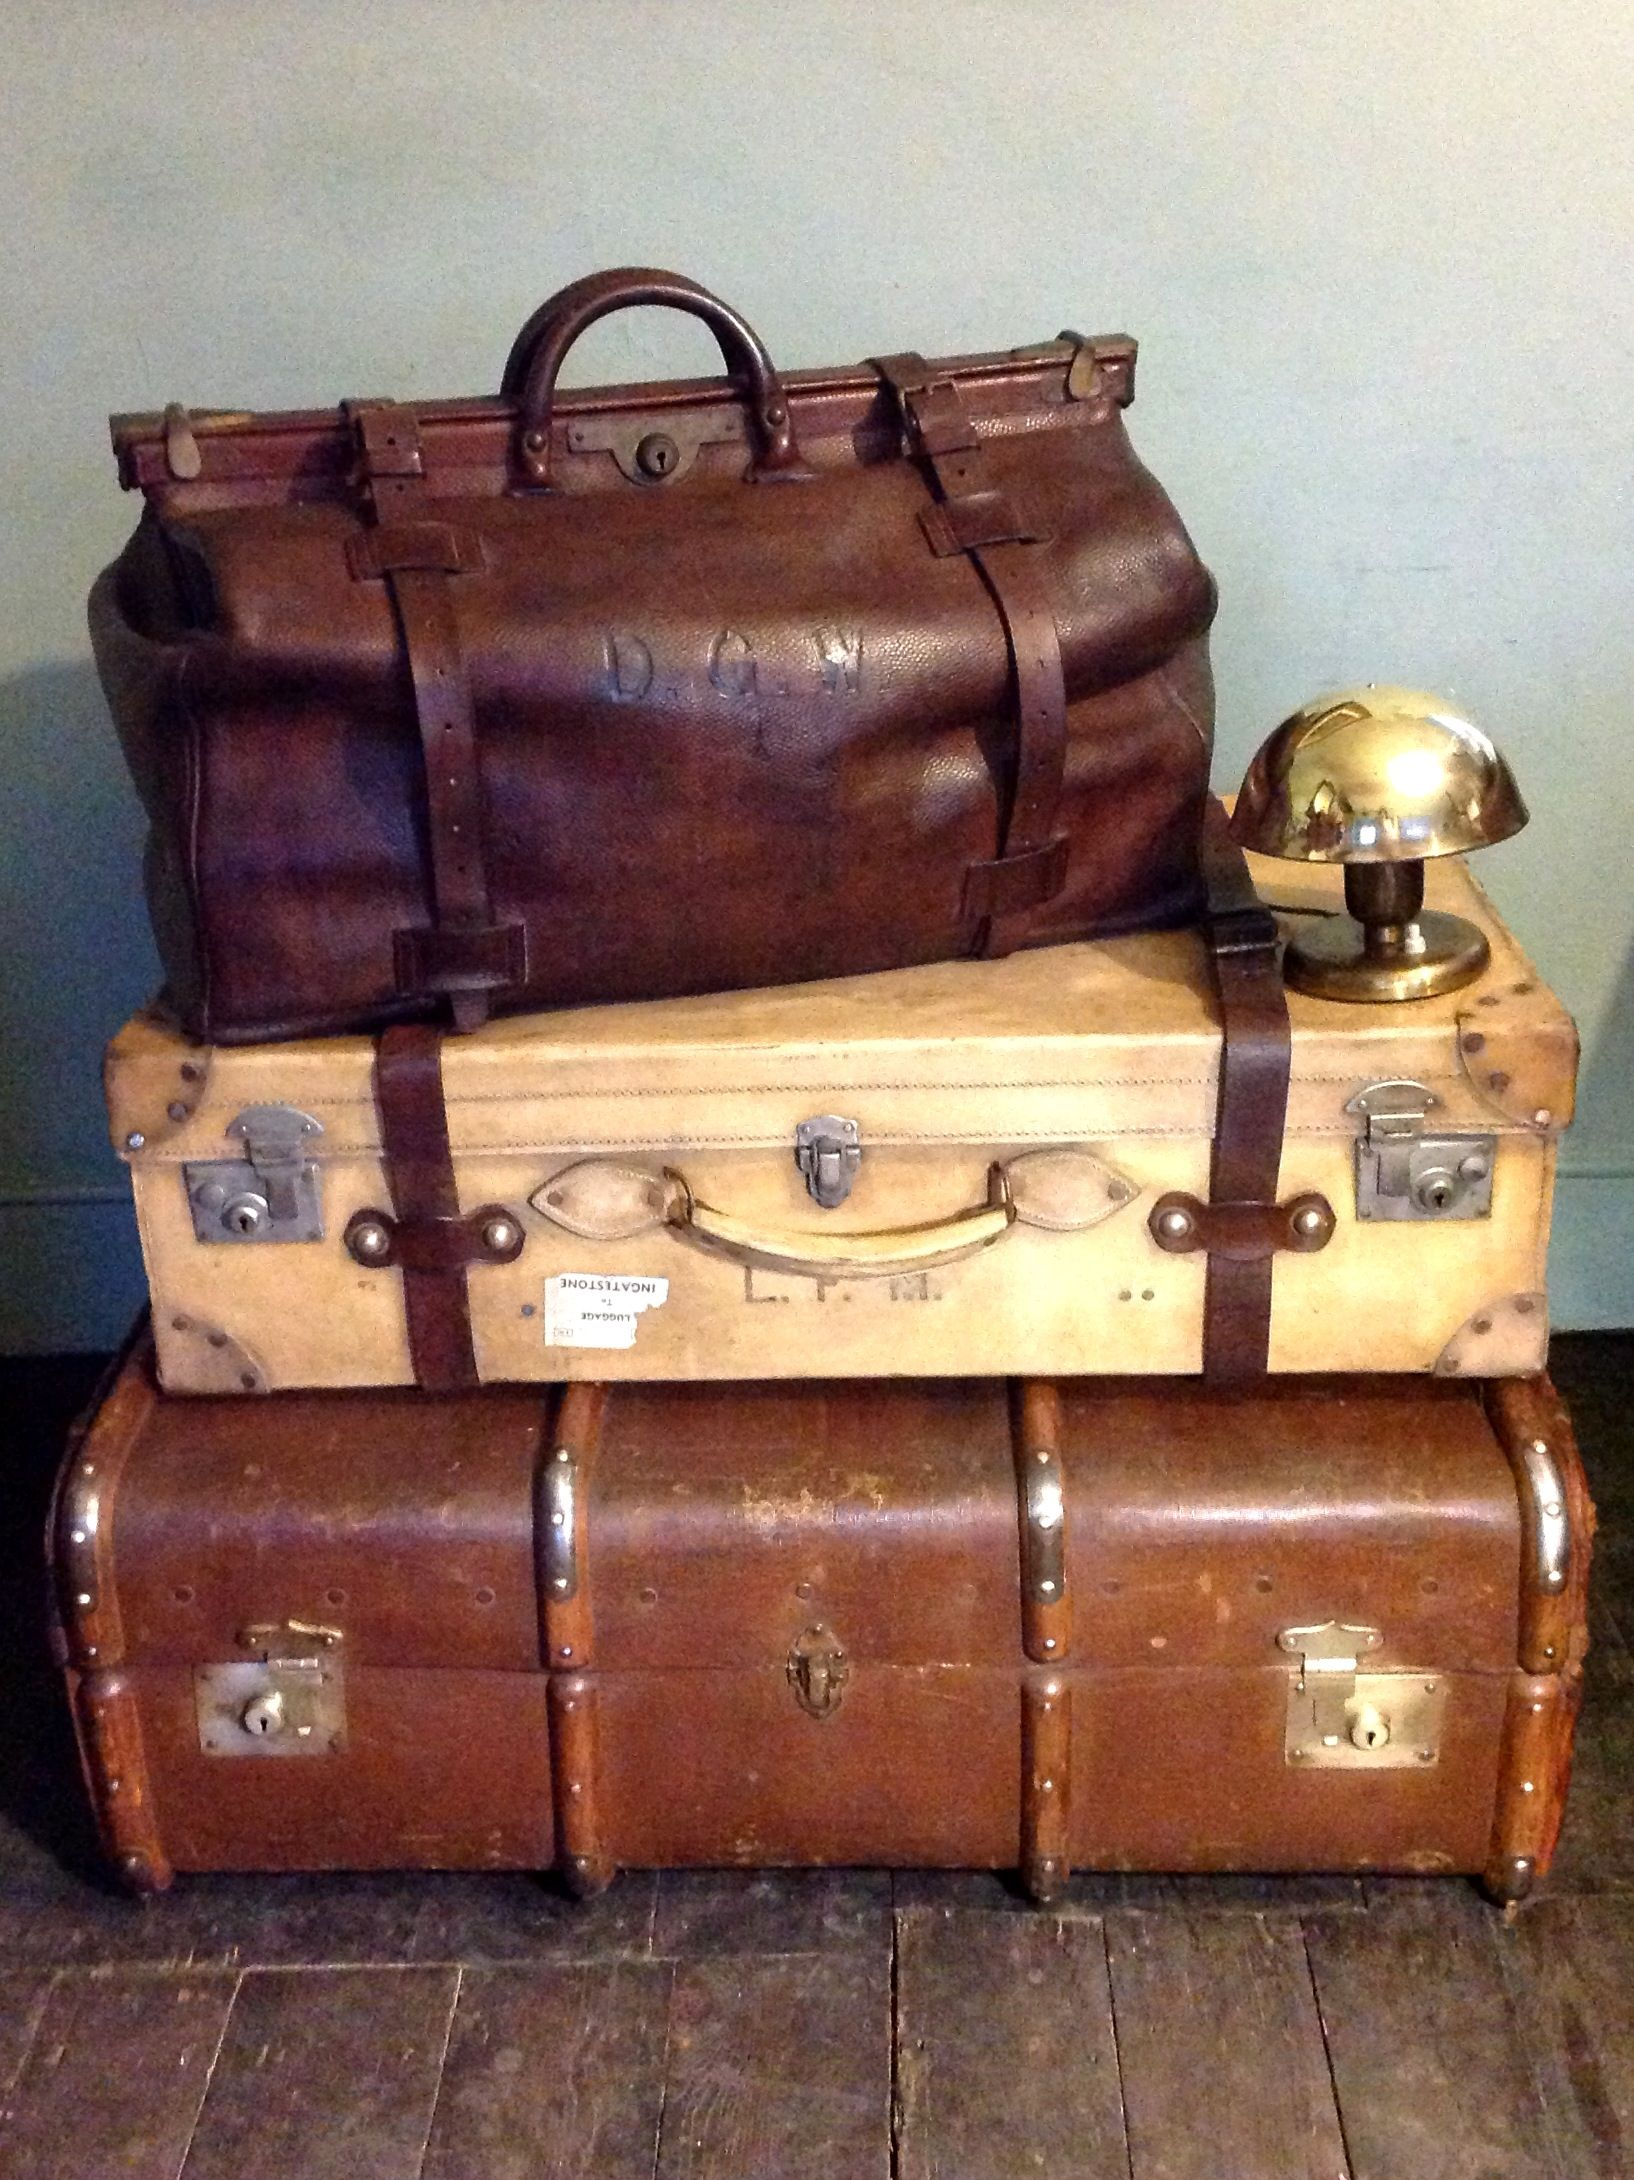 d9cda63c2 We specialise in providing a Selection of 19th Century Victorian Leather  Luggage Travel Cases & Trunks